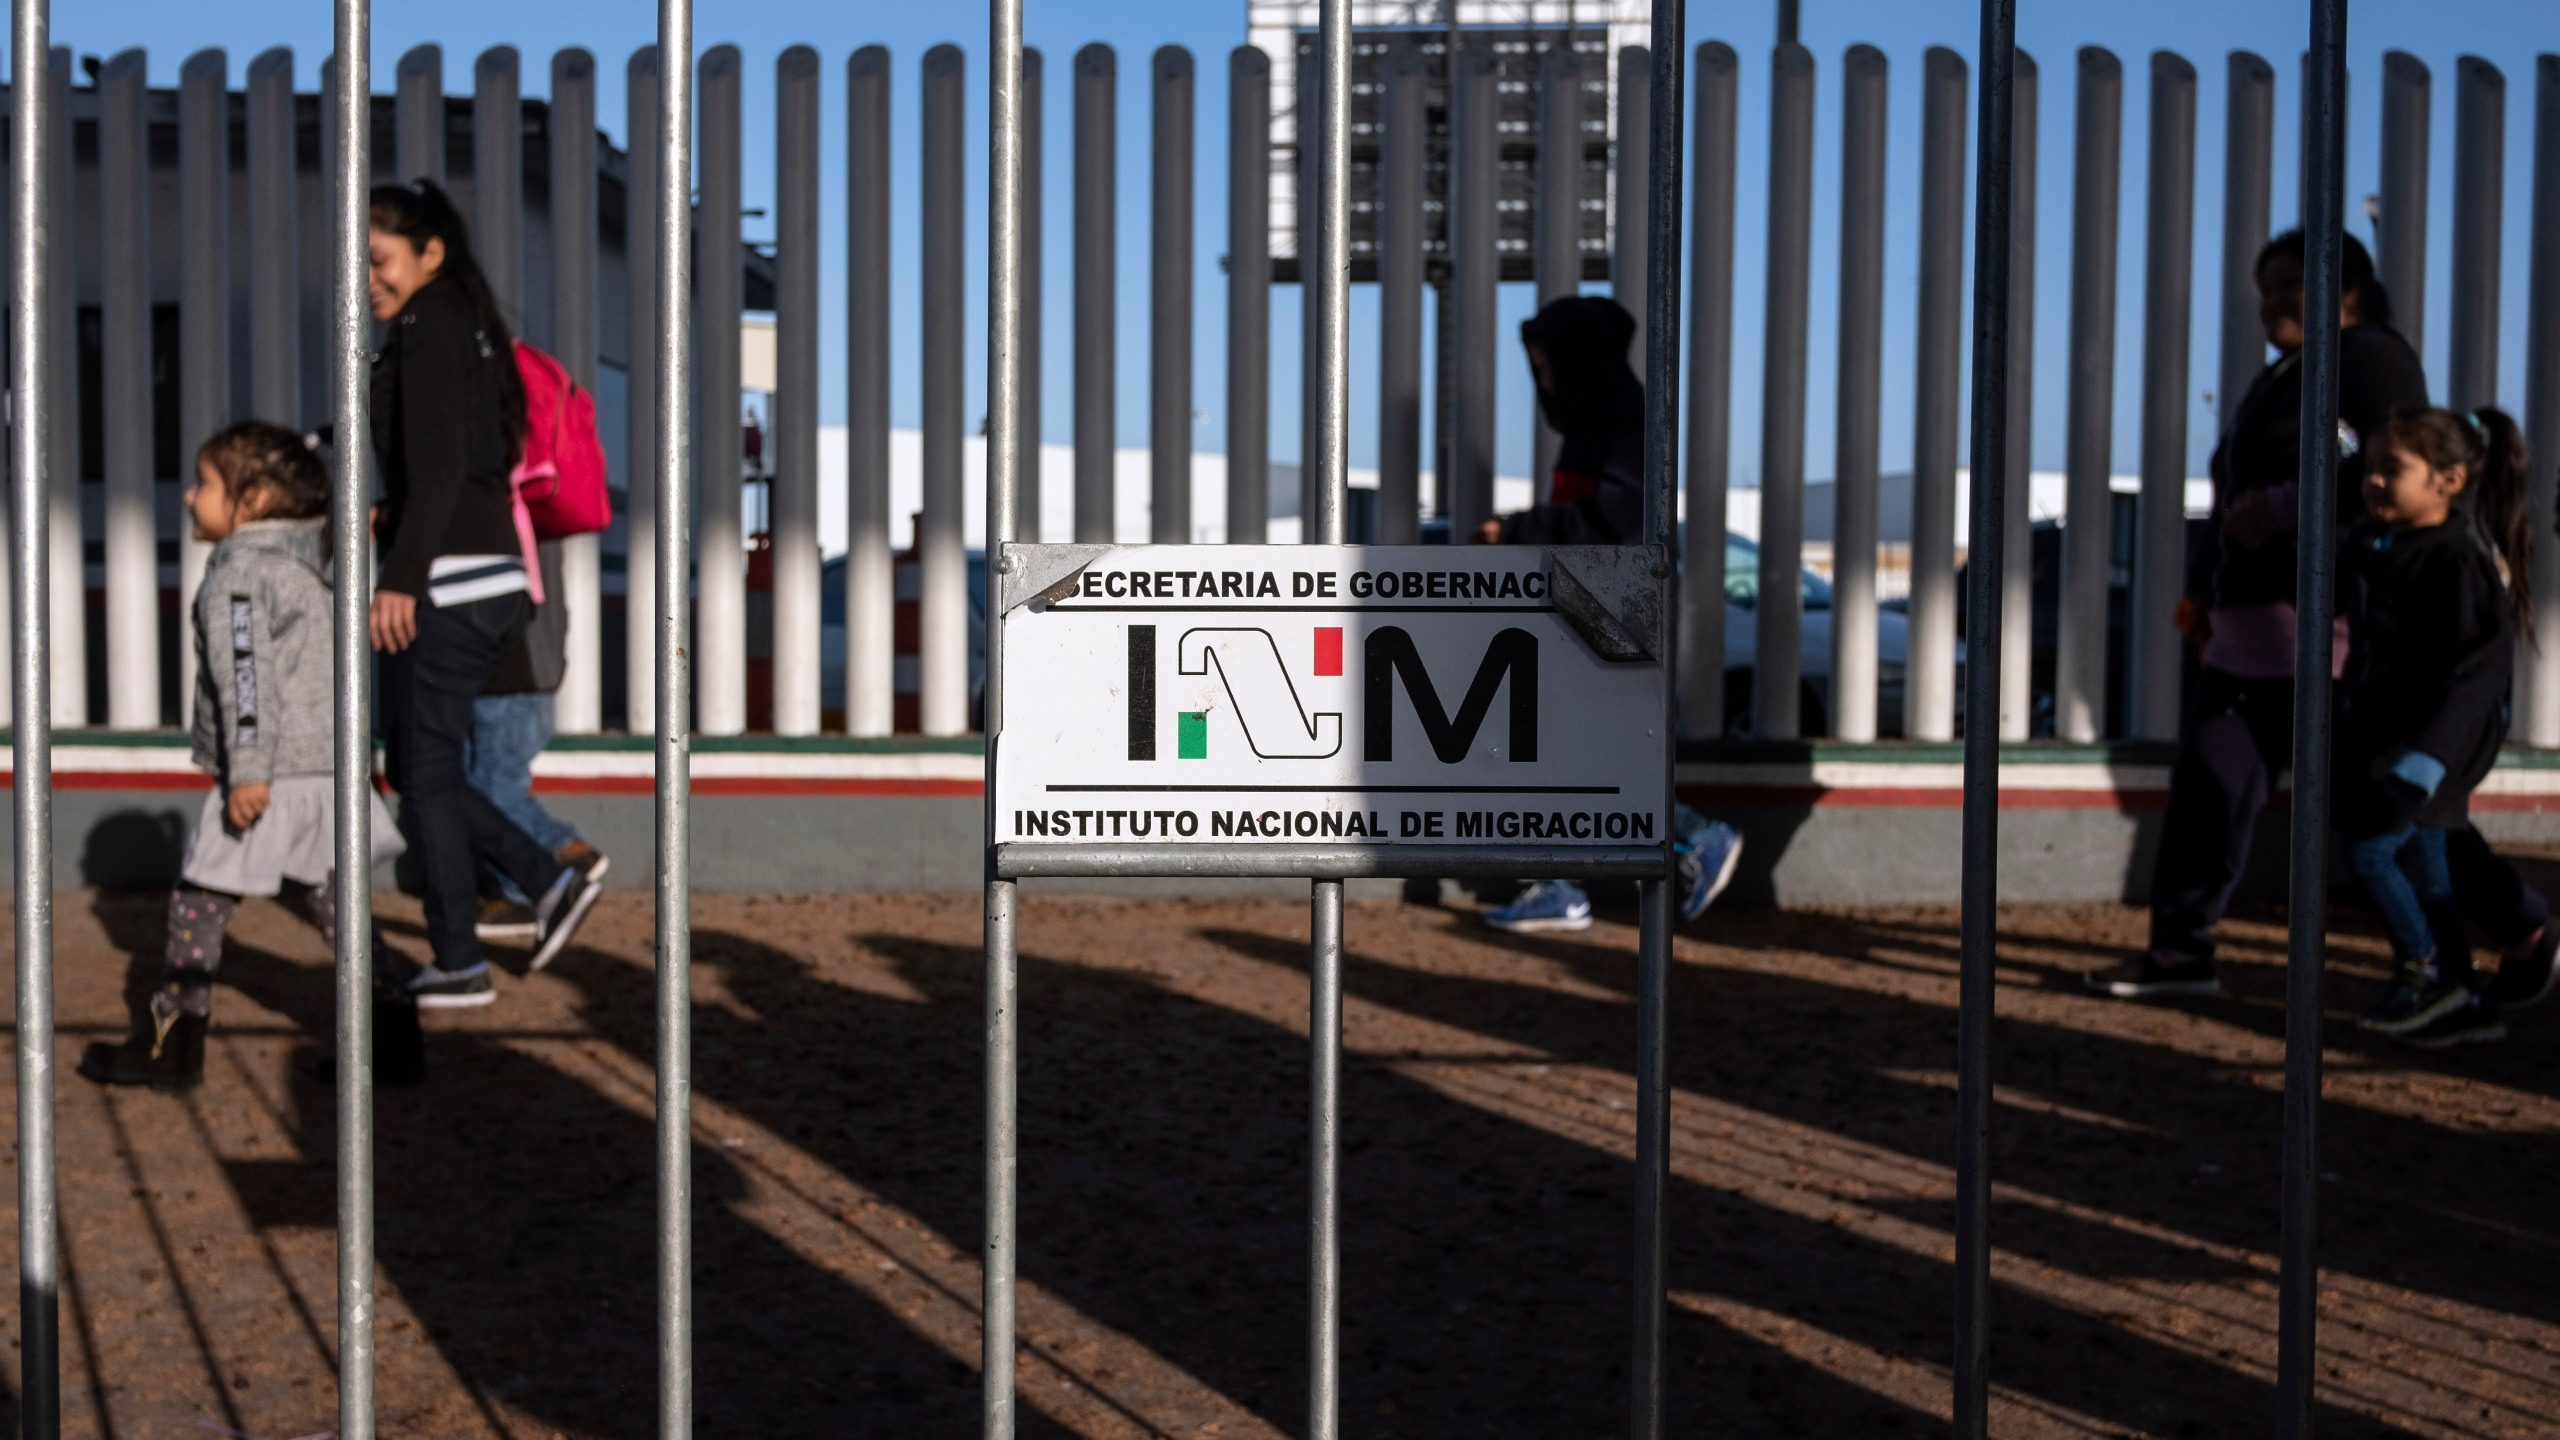 Asylum seekers walk for their appointment date with U.S. authorities outside El Chaparral crossing port on the US-Mexico border in Tijuana, Baja California state, Mexico, on Oct. 18, 2019. (Credit: GUILLERMO ARIAS/AFP via Getty Images)